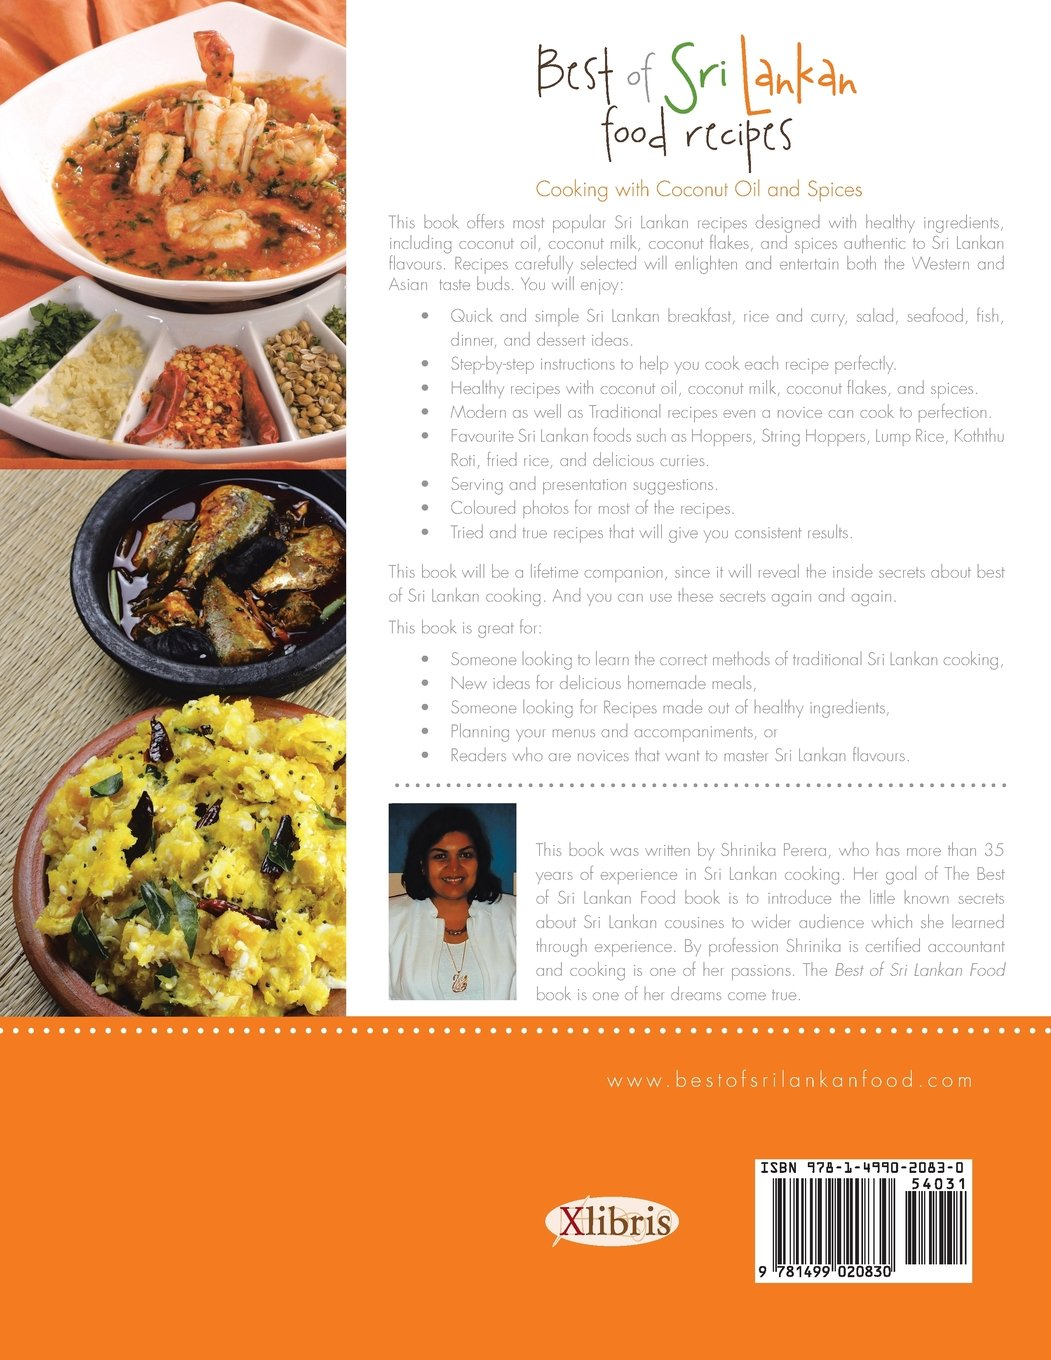 Best of sri lankan food recipes healthy cooking with coconut and best of sri lankan food recipes healthy cooking with coconut and spices shrinika perera 9781499020830 amazon books forumfinder Image collections